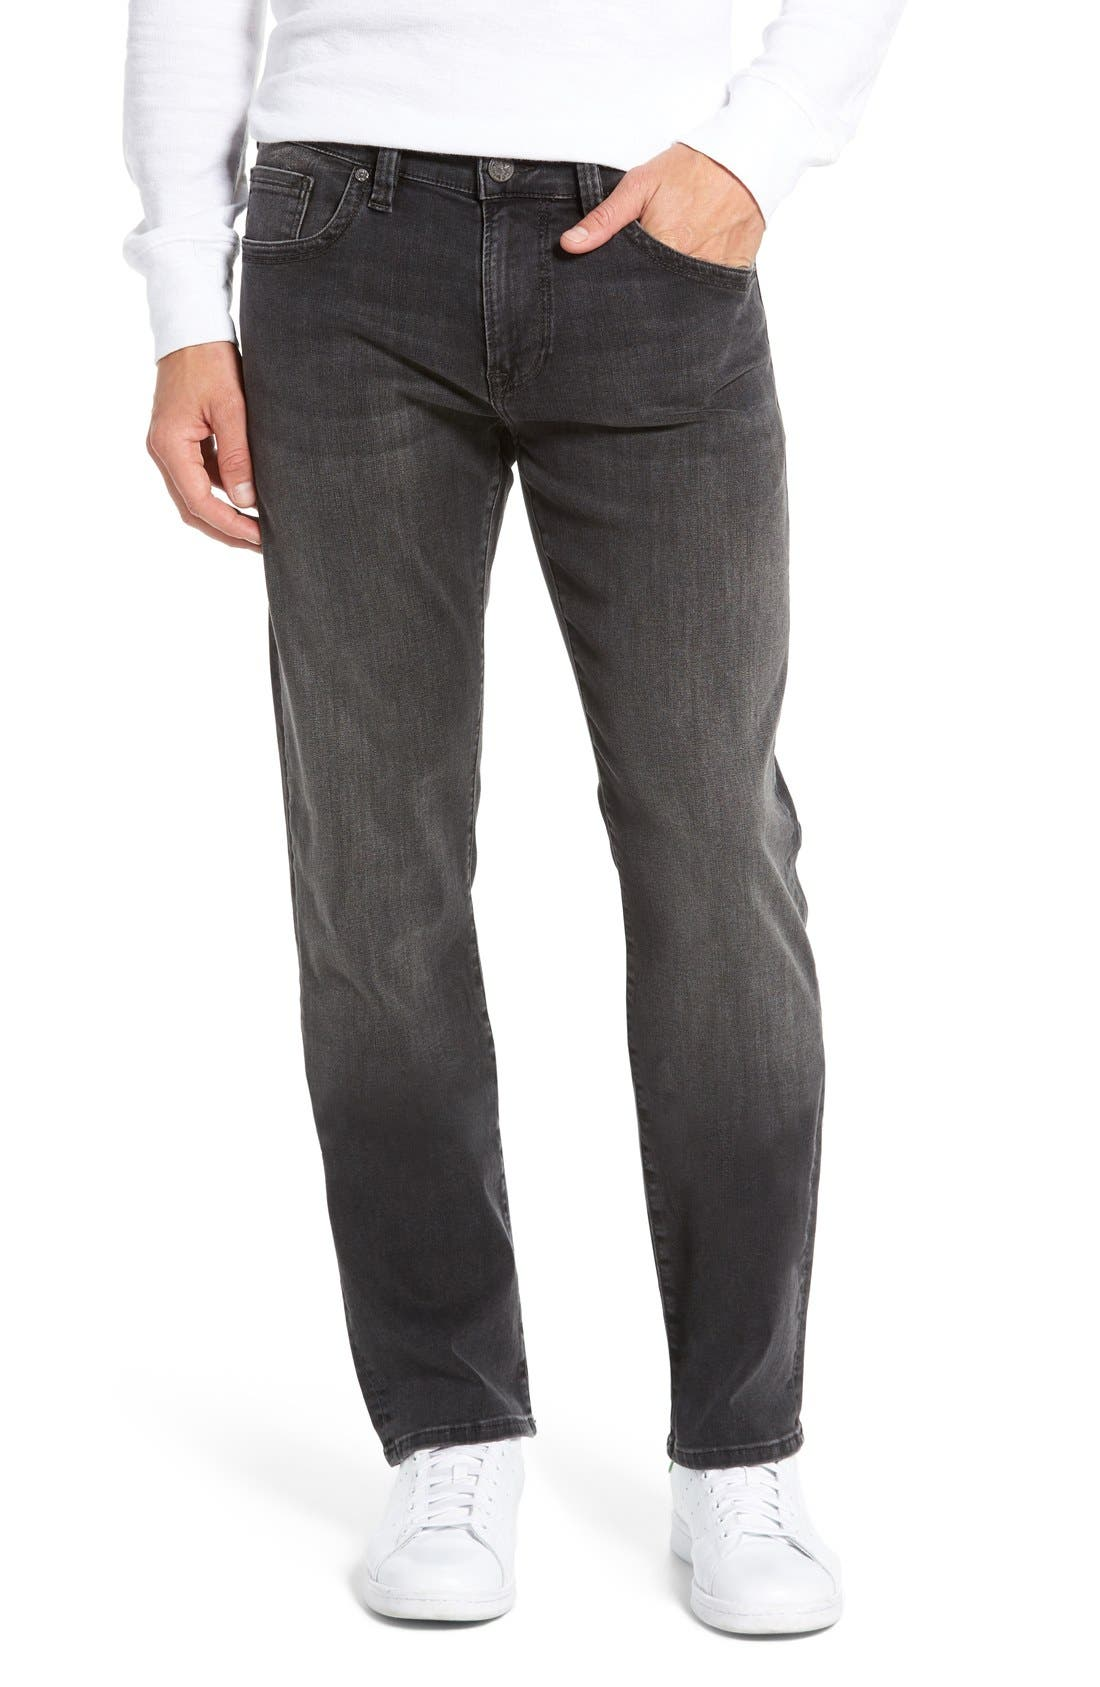 Alternate Image 1 Selected - 34 Heritage 'Courage' Straight Leg Jeans (Coal Soft)